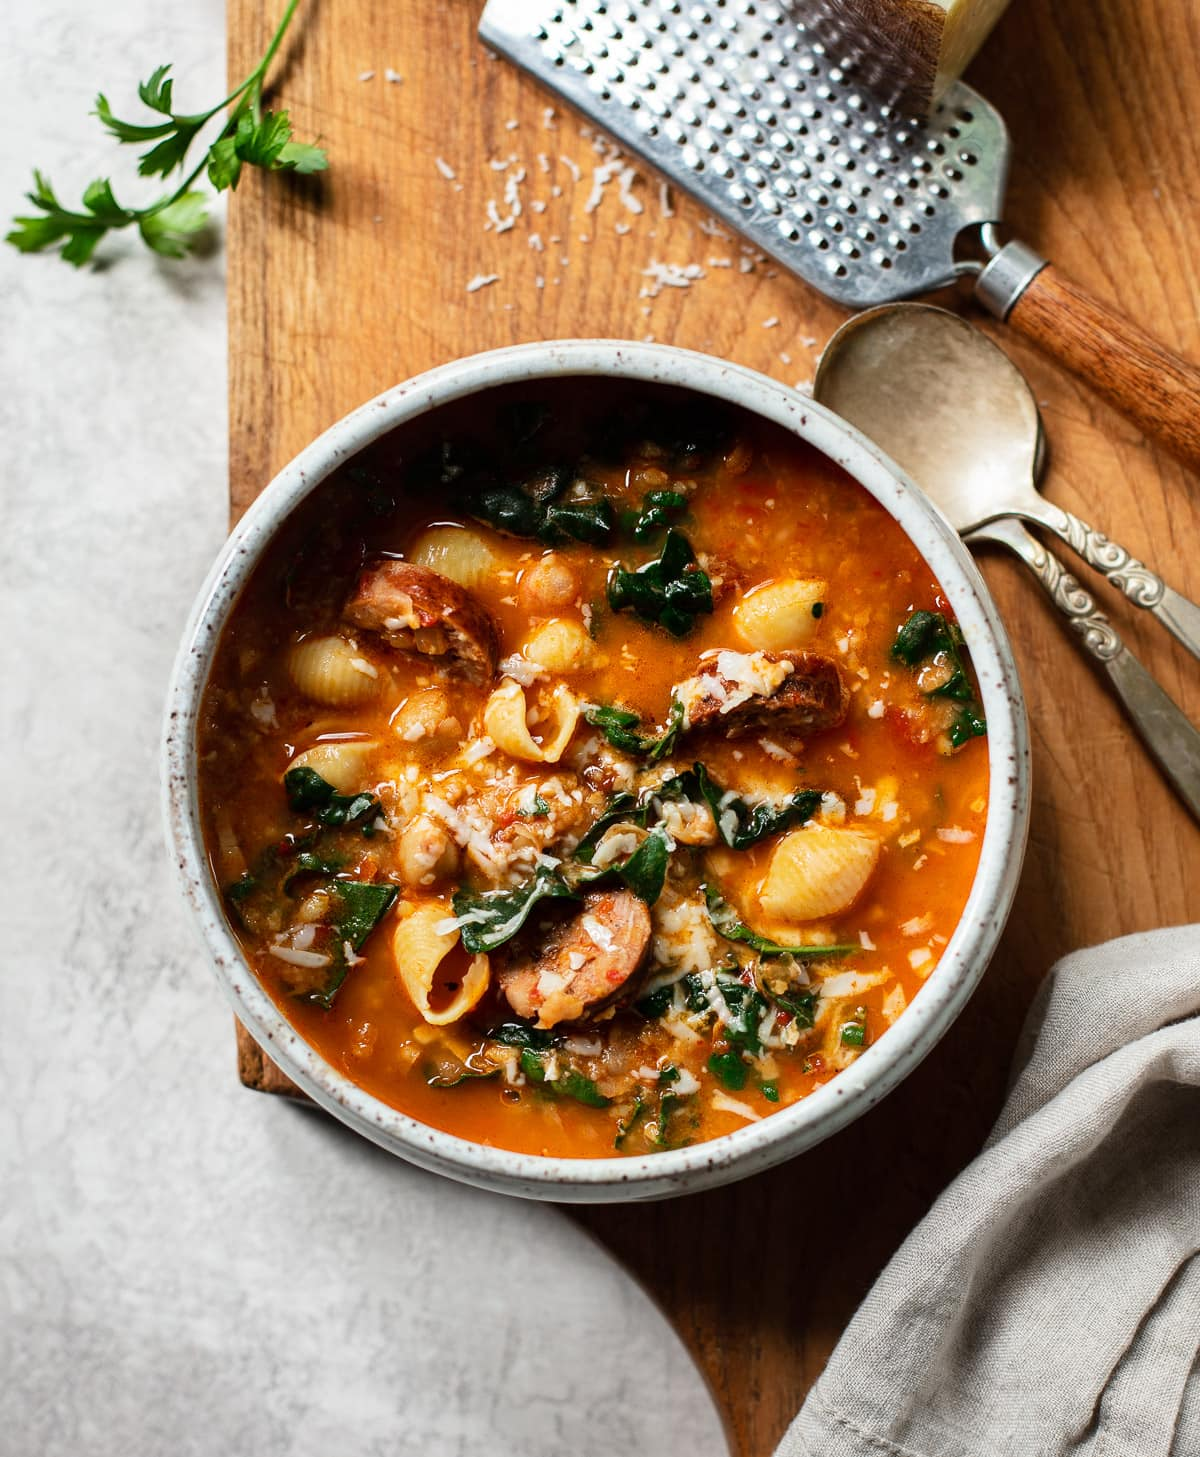 Chickpea Chorizo Stew with Greens